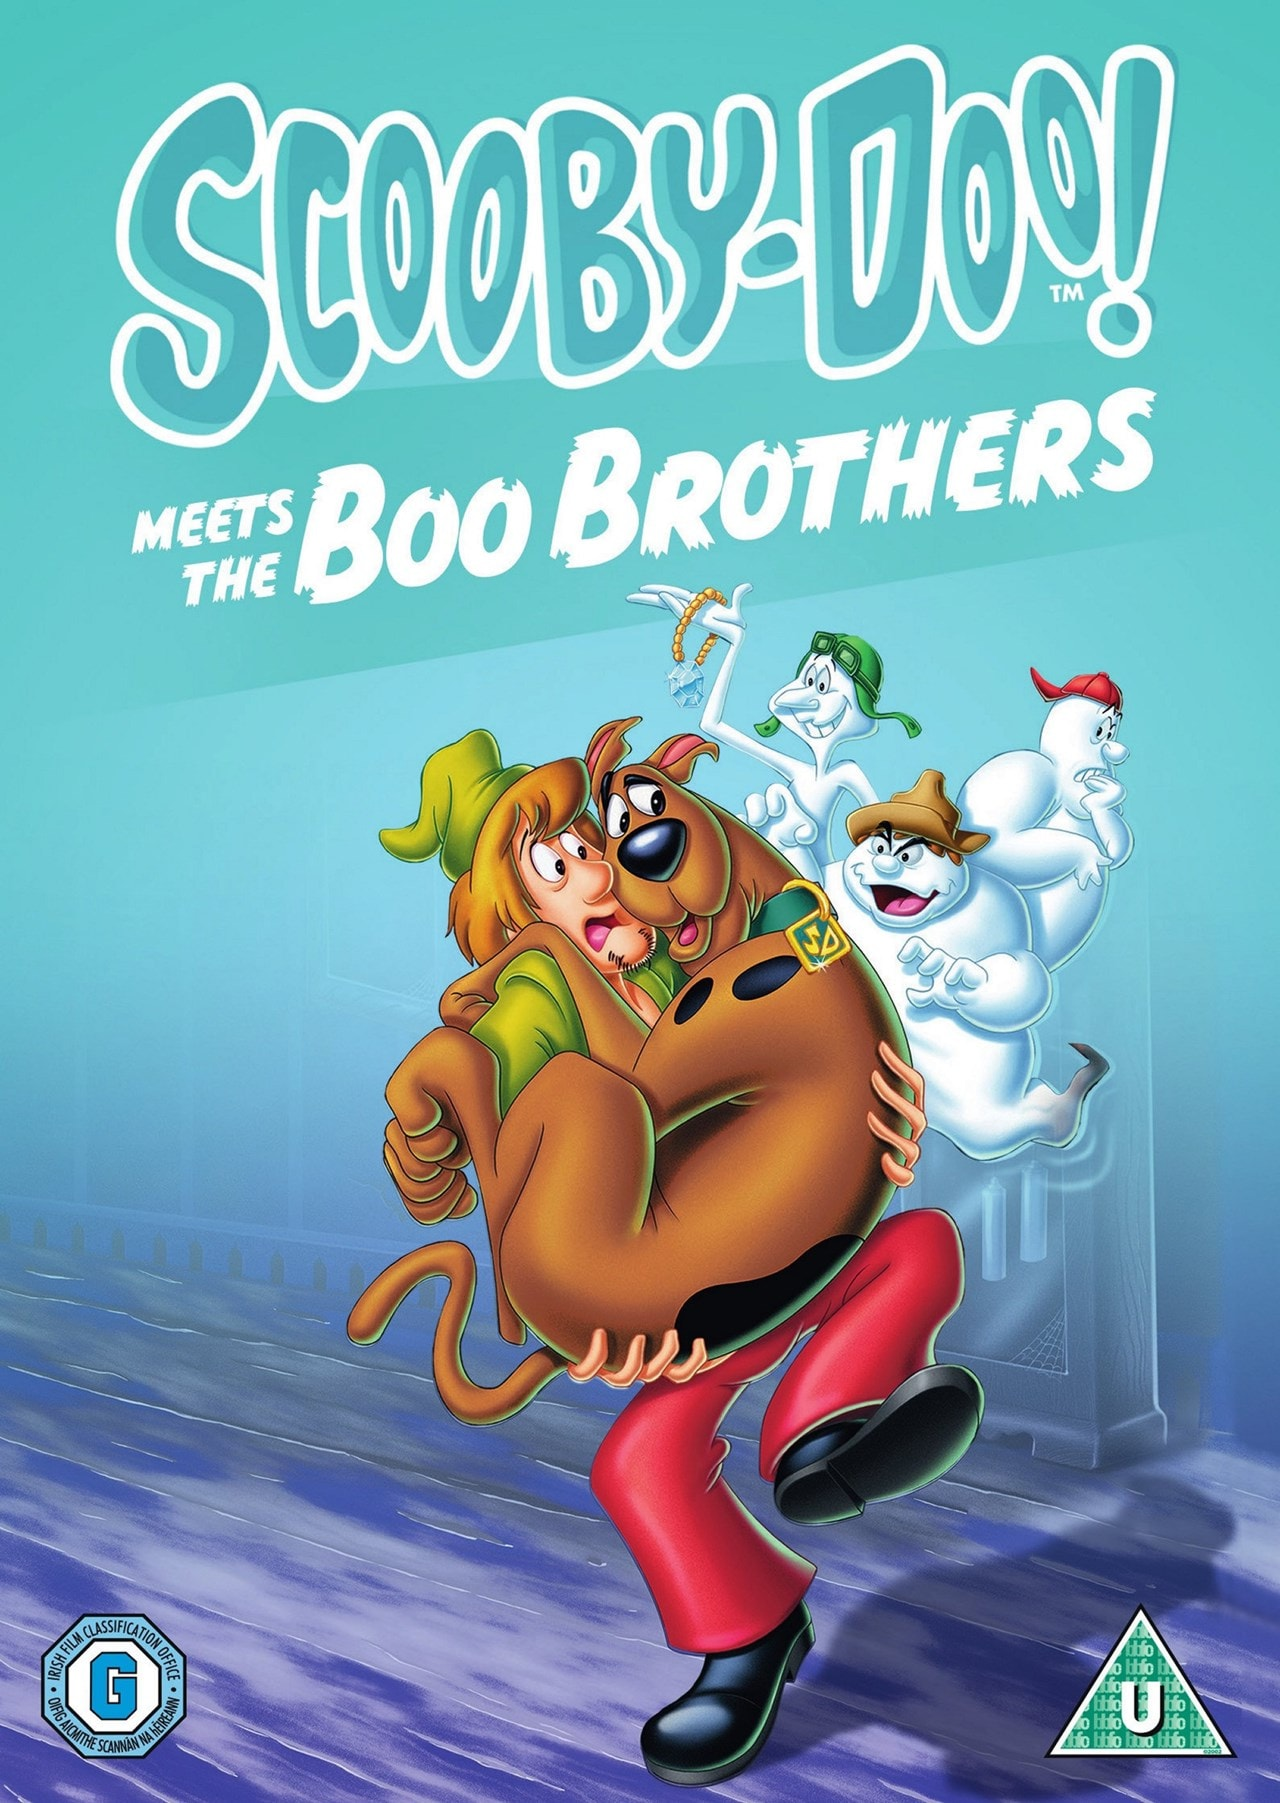 Scooby-Doo: Scooby-Doo Meets the Boo Brothers - 1